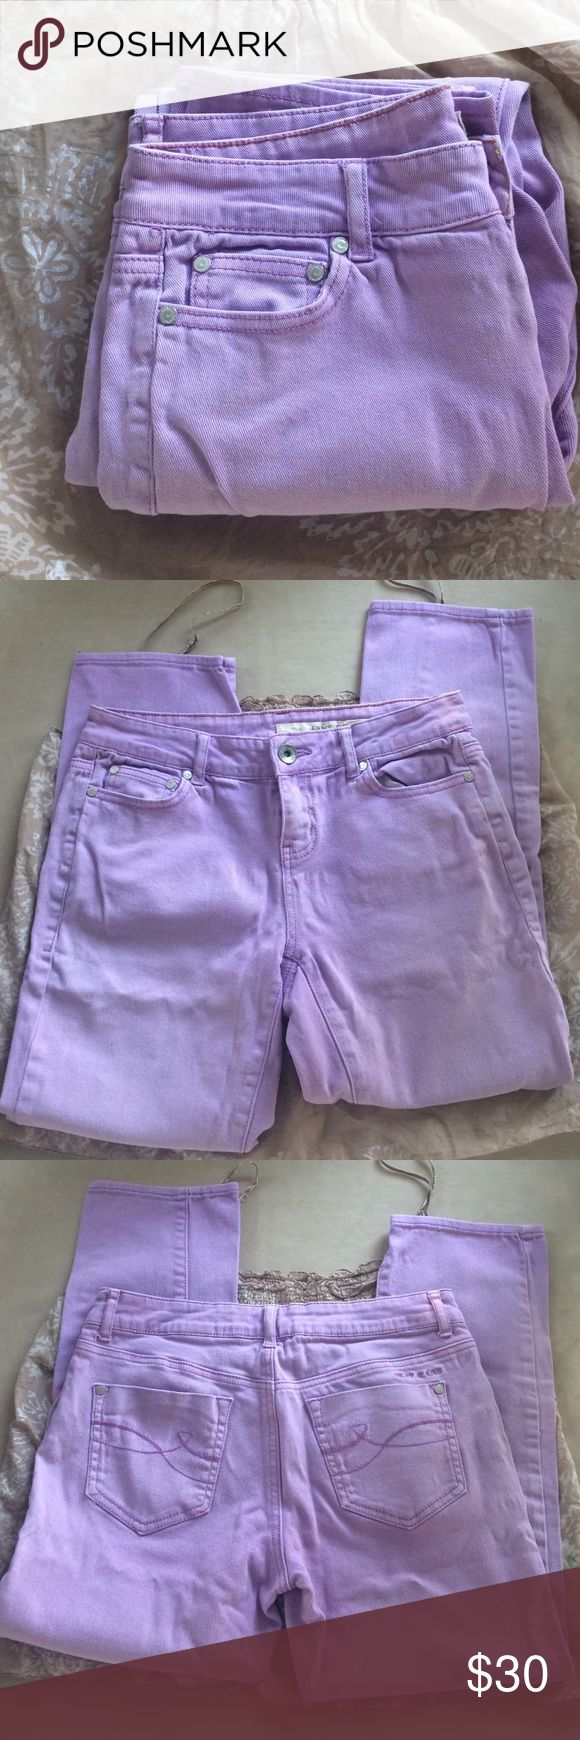 "DKNY lavender jeans Really cute lively lavender jeans by DKNY.  Like new condition.  16.5"" across waist. 8.5"" front rise.  26"" inseam.  Leg opening is 7"". These have a boyfriend vibe fit.  In reality the lavender is less bright. The last picture is closer  to the true lavender color. DKNY Jeans Ankle & Cropped"